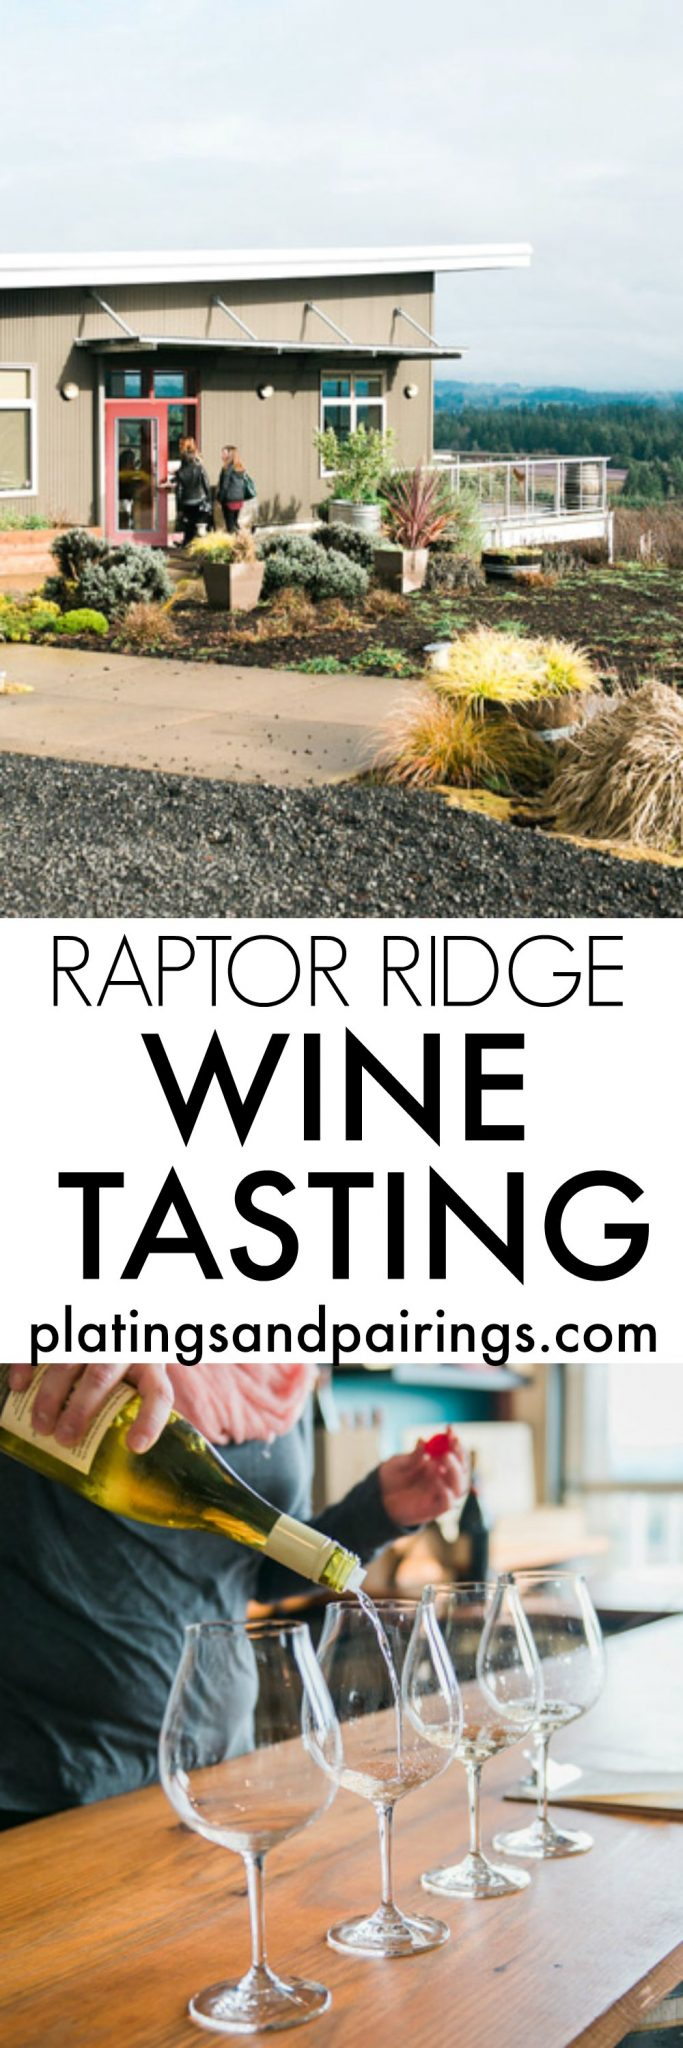 Raptor Ridge in Newberg, Oregon - A Day of Wine Tasting | platingsandpairings.com